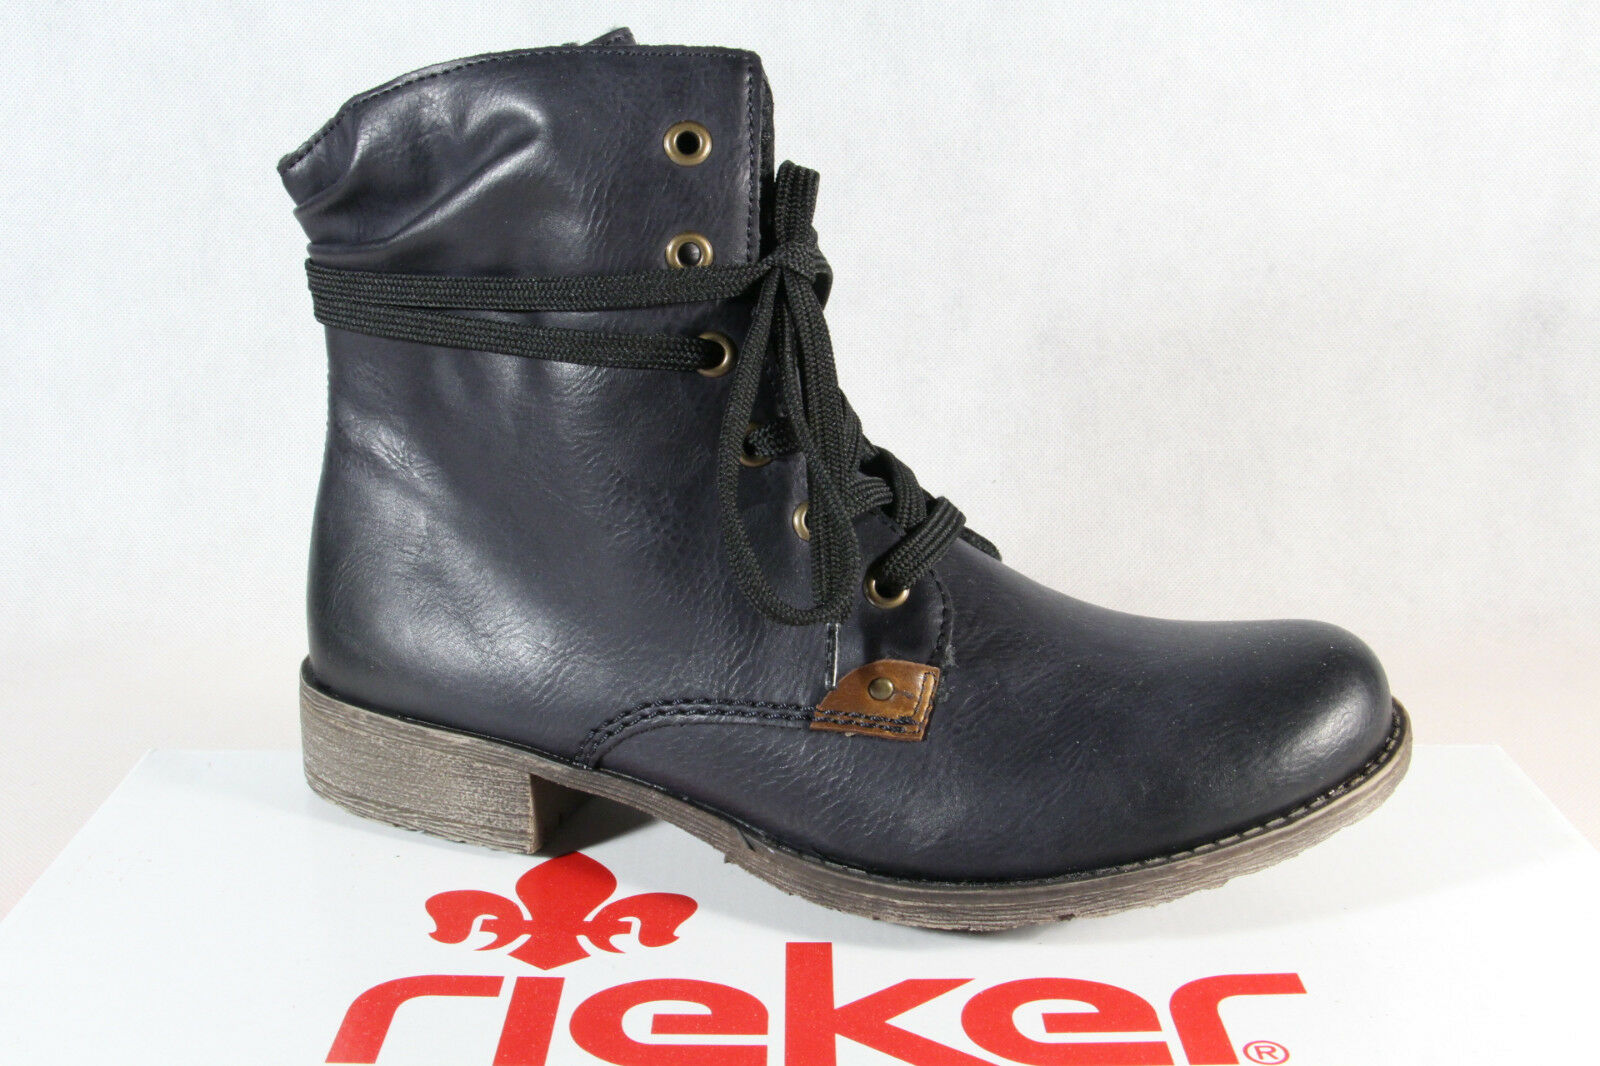 Rieker Women's Boots Ankle Lace up bluee 70829 New